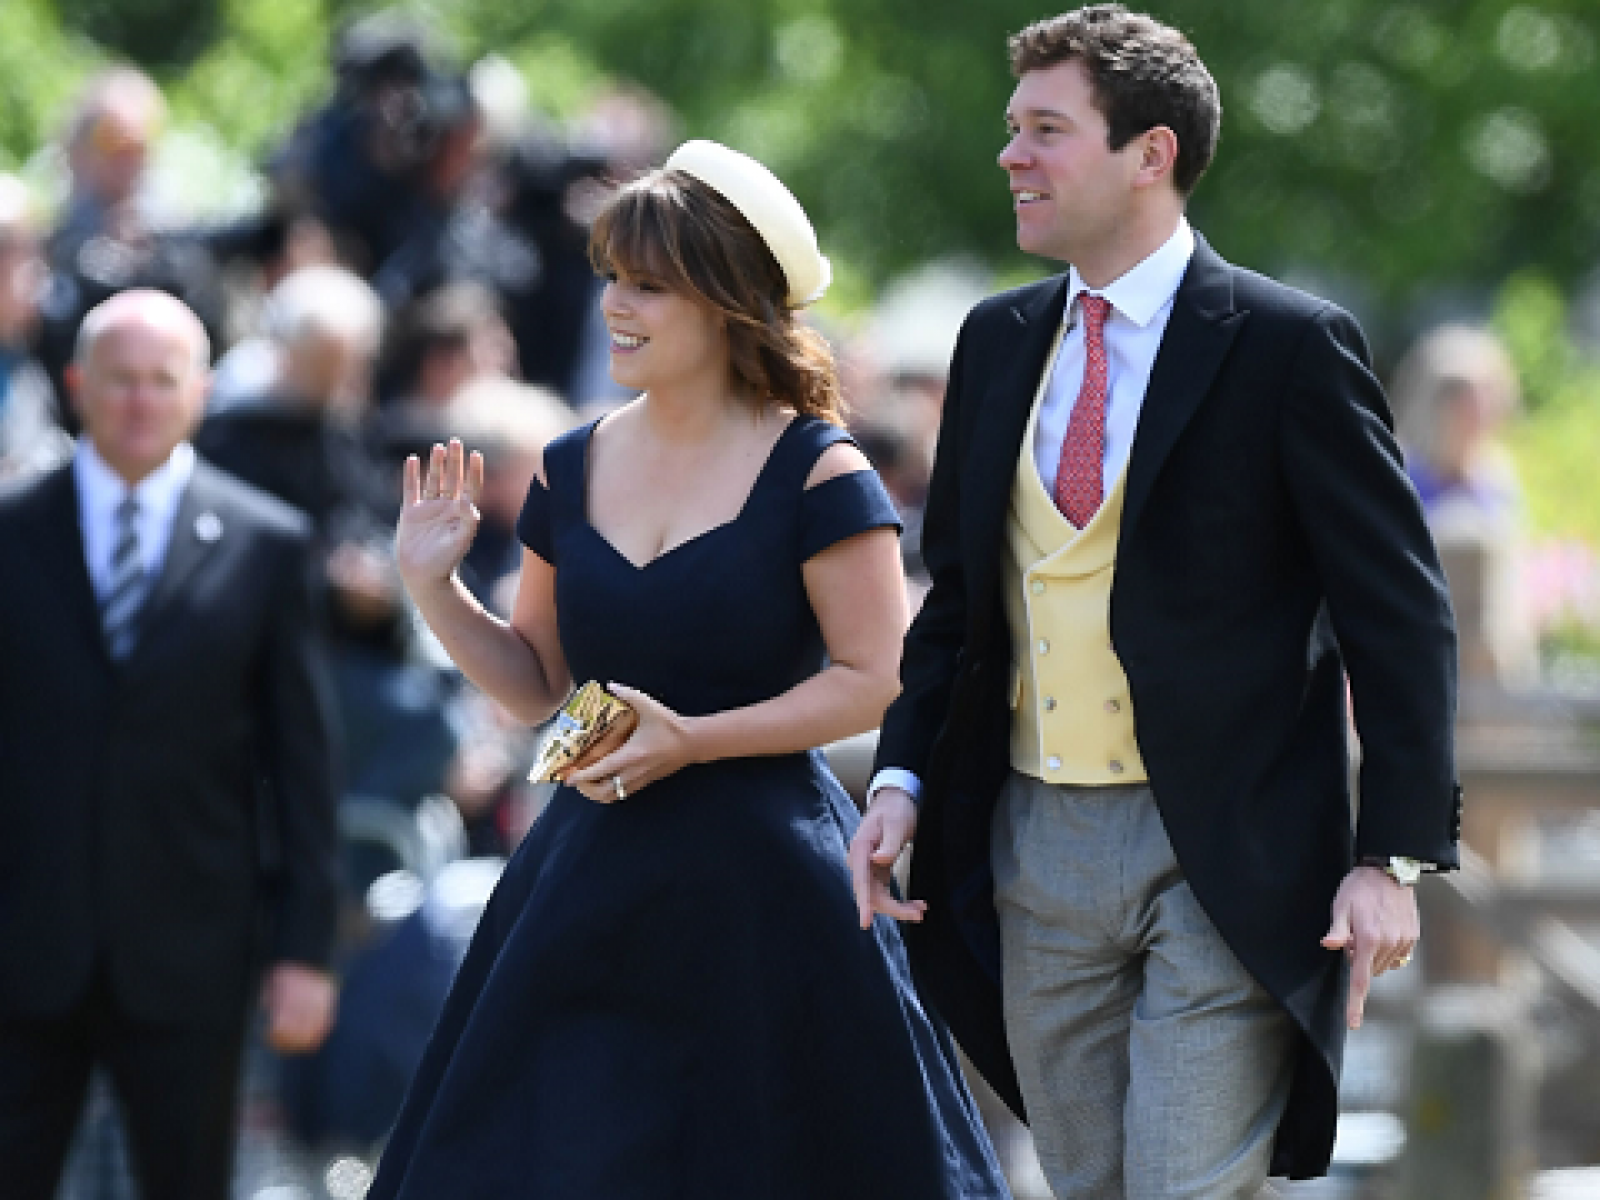 Princess Eugenie Wedding Televised.How To Watch Princess Eugenie Wedding Union With Jack Brooksbank To